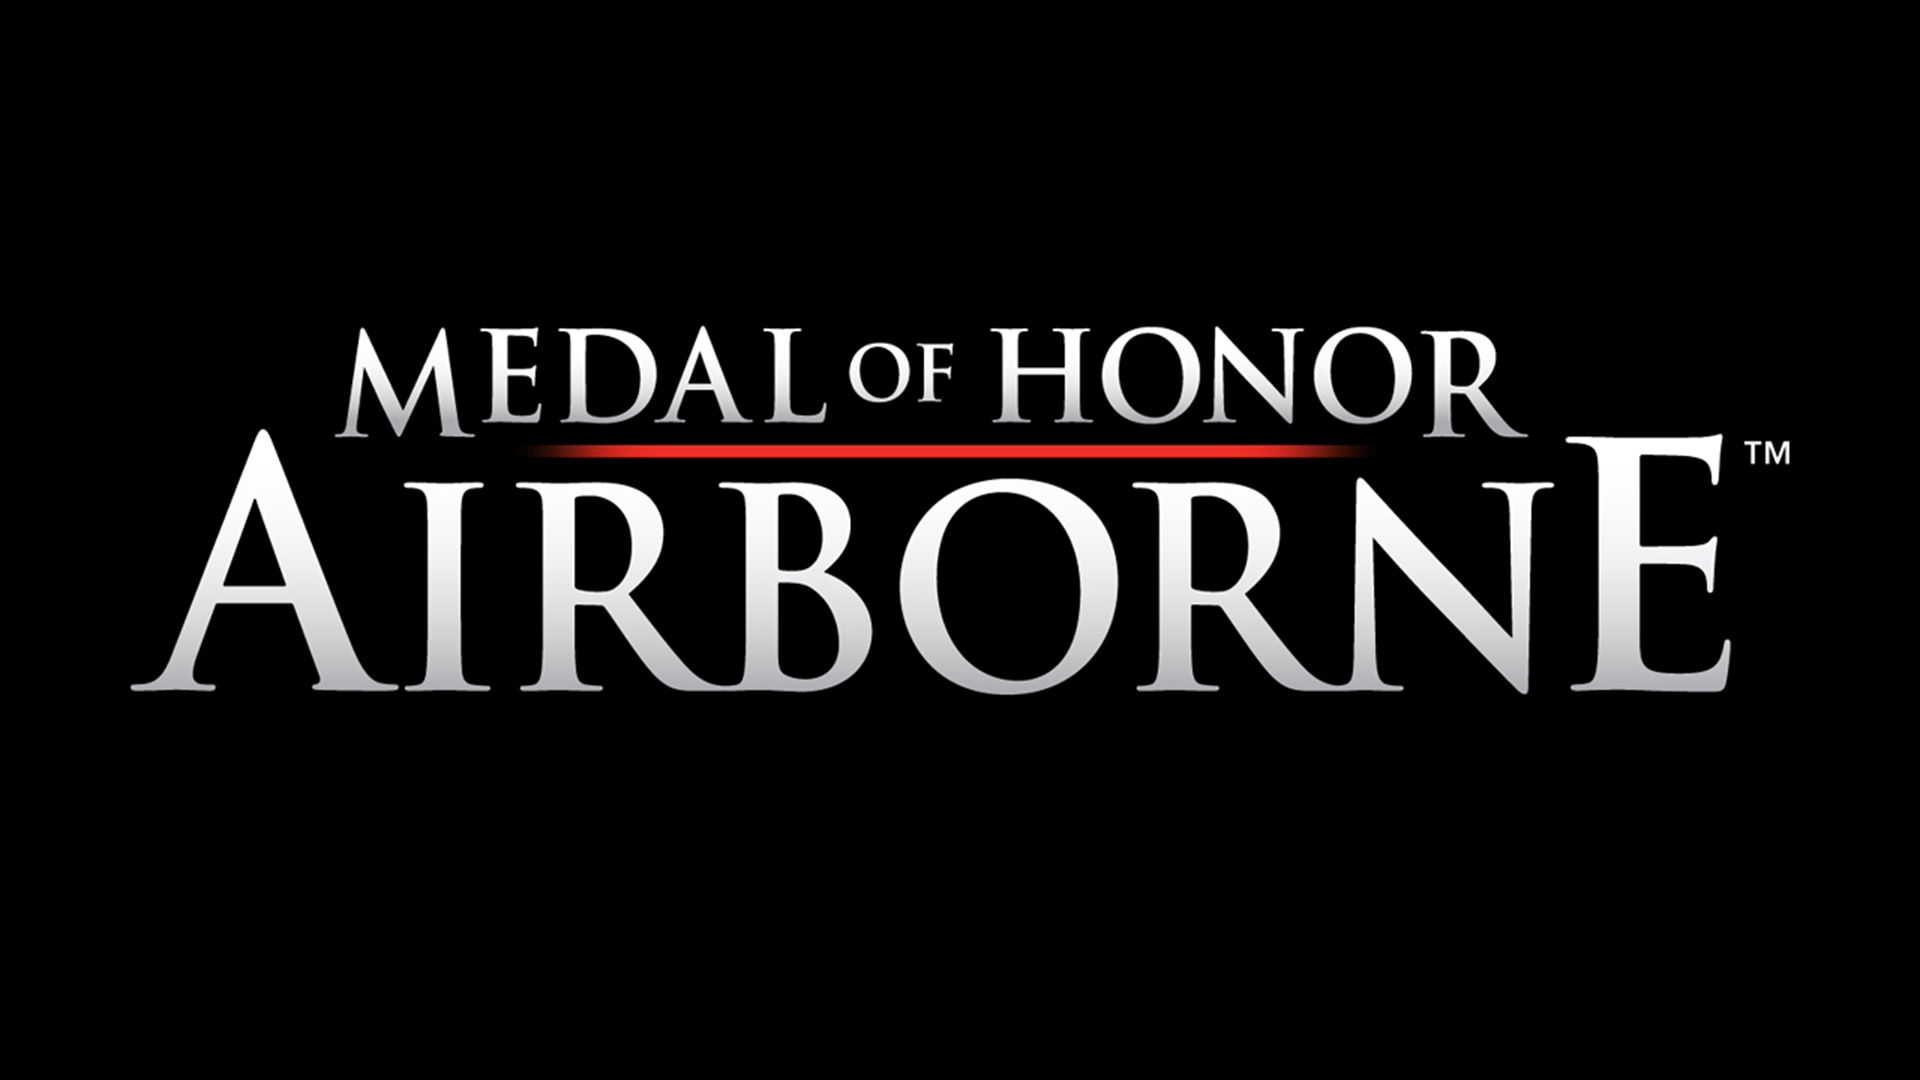 Medal of honor: airborne (2007) playstation 3 box cover art.